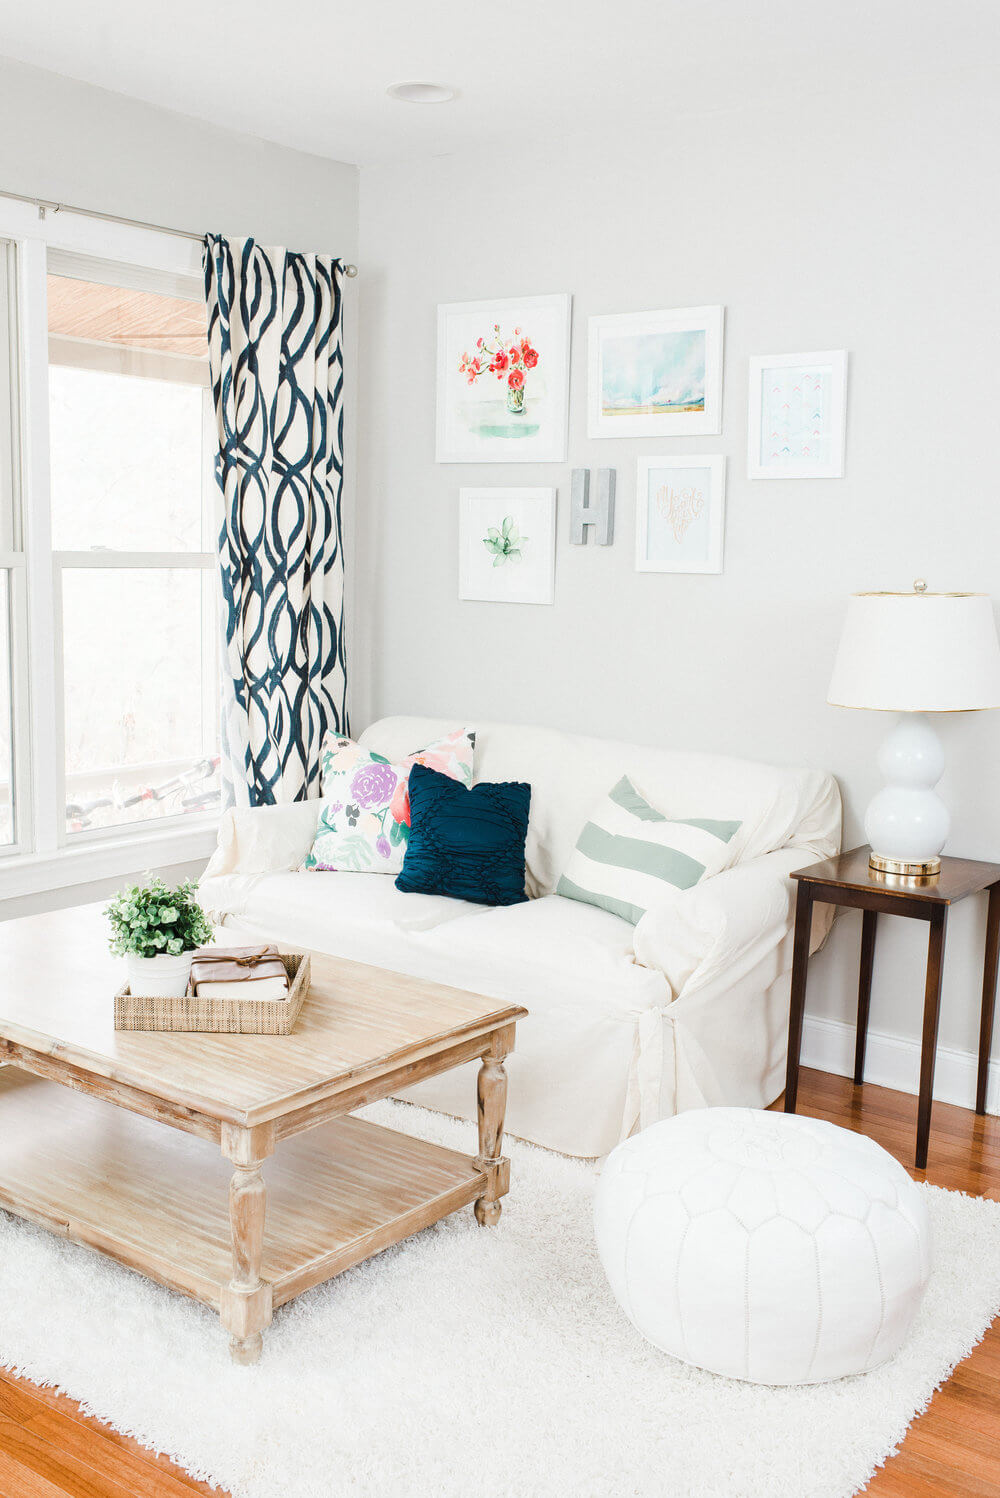 White on White with Patterned Curtains